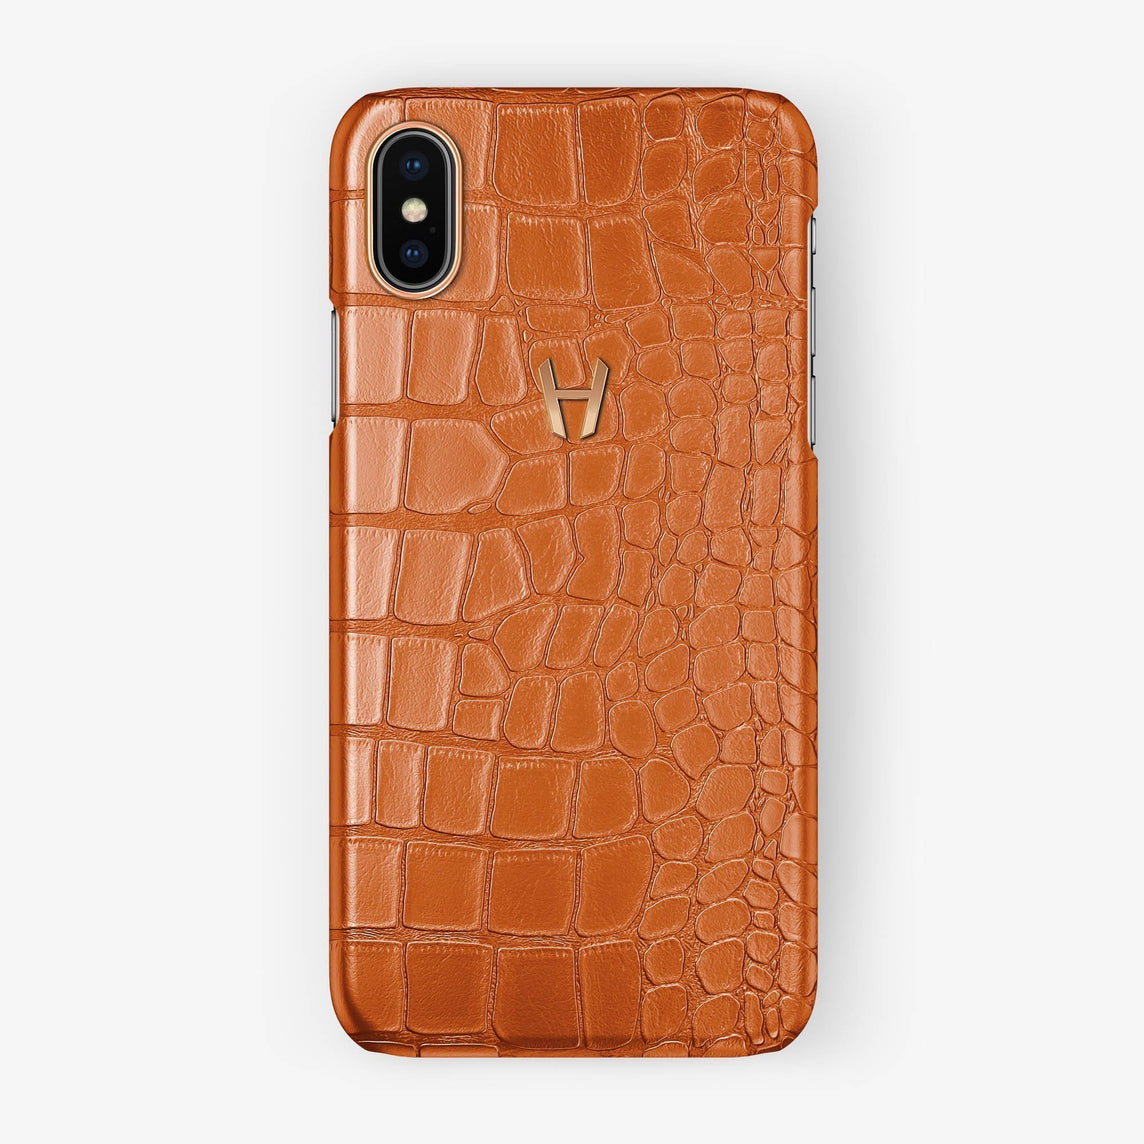 Alligator Case Iphone Xs Max Orange Rose Gold Hadoro Paris